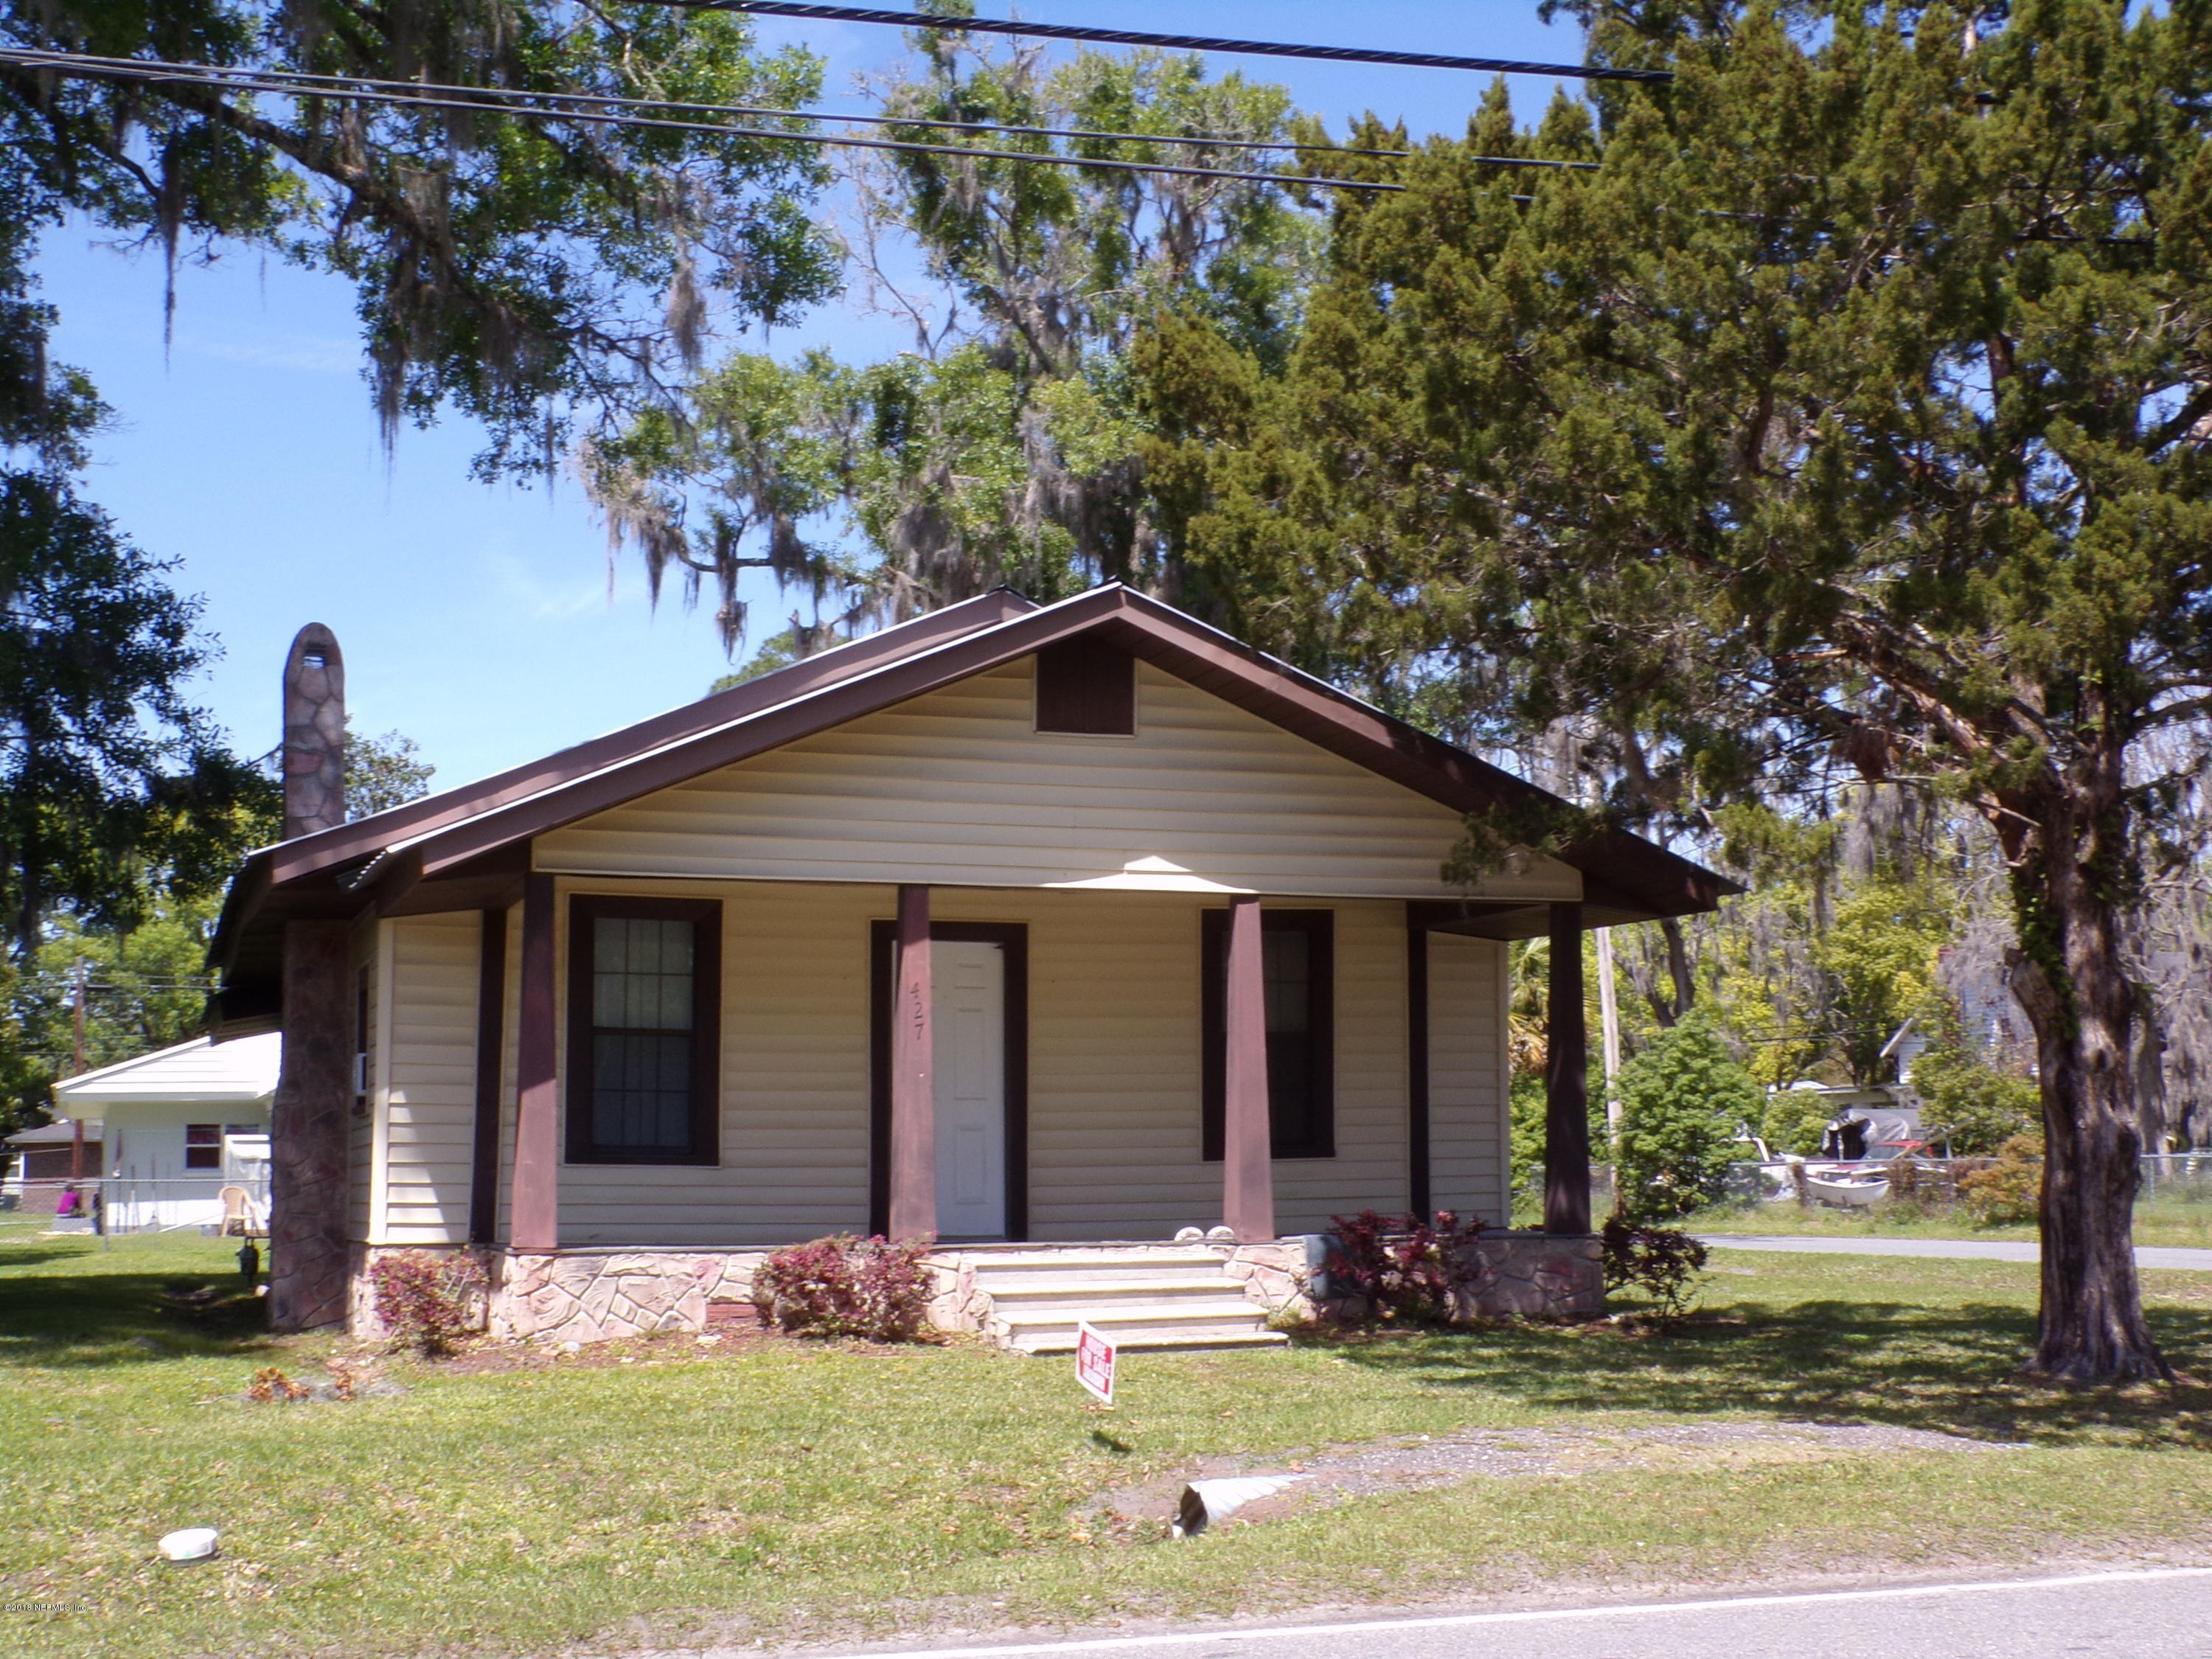 427 ST CLAIR, STARKE, FLORIDA 32091, 3 Bedrooms Bedrooms, ,1 BathroomBathrooms,Residential - single family,For sale,ST CLAIR,929767